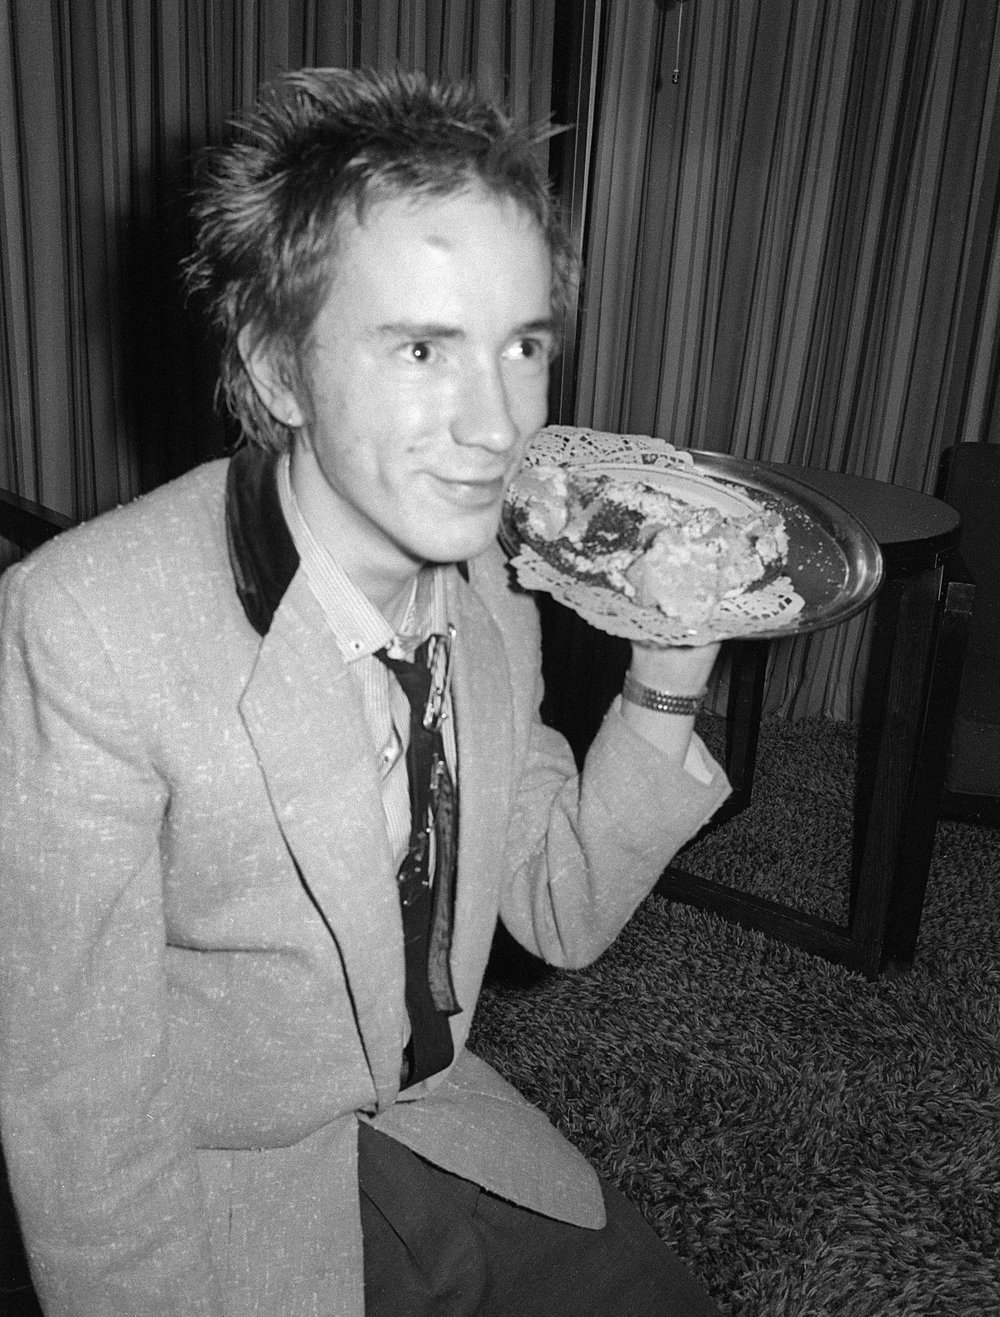 Johnny Rotten. Anarchy Tour.